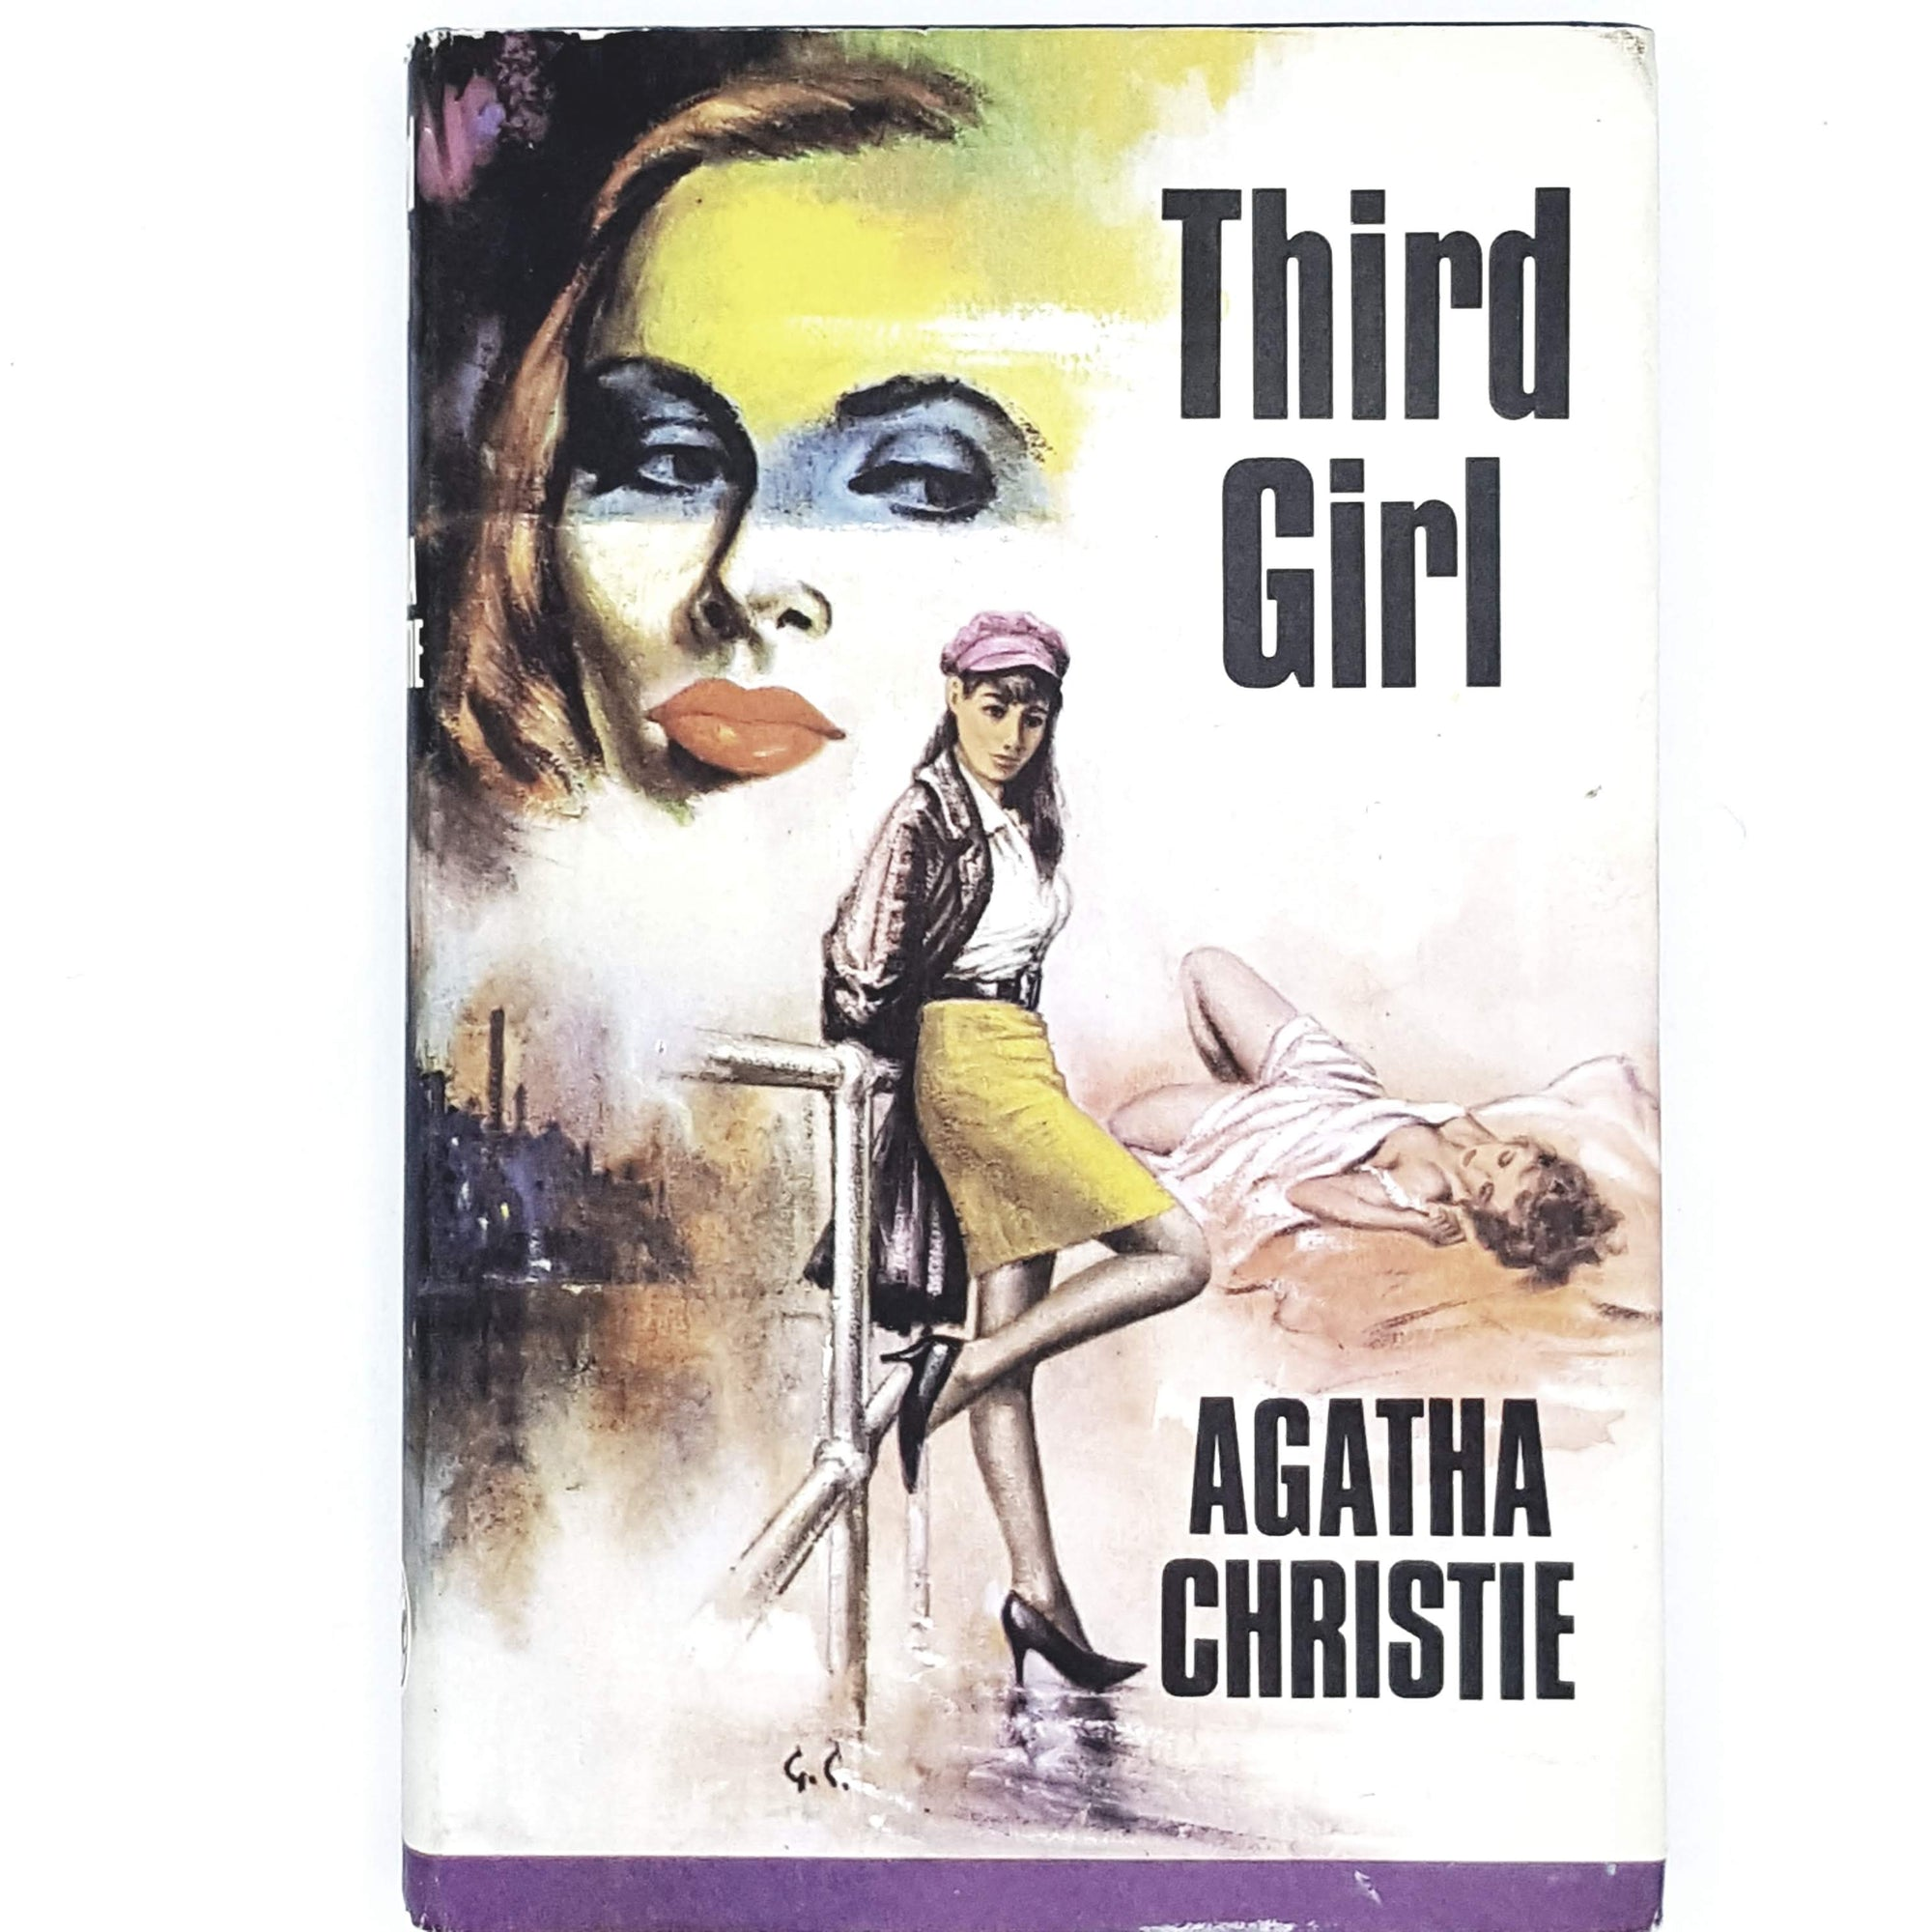 Agatha Christie's Third Girl - The Book Club 1966